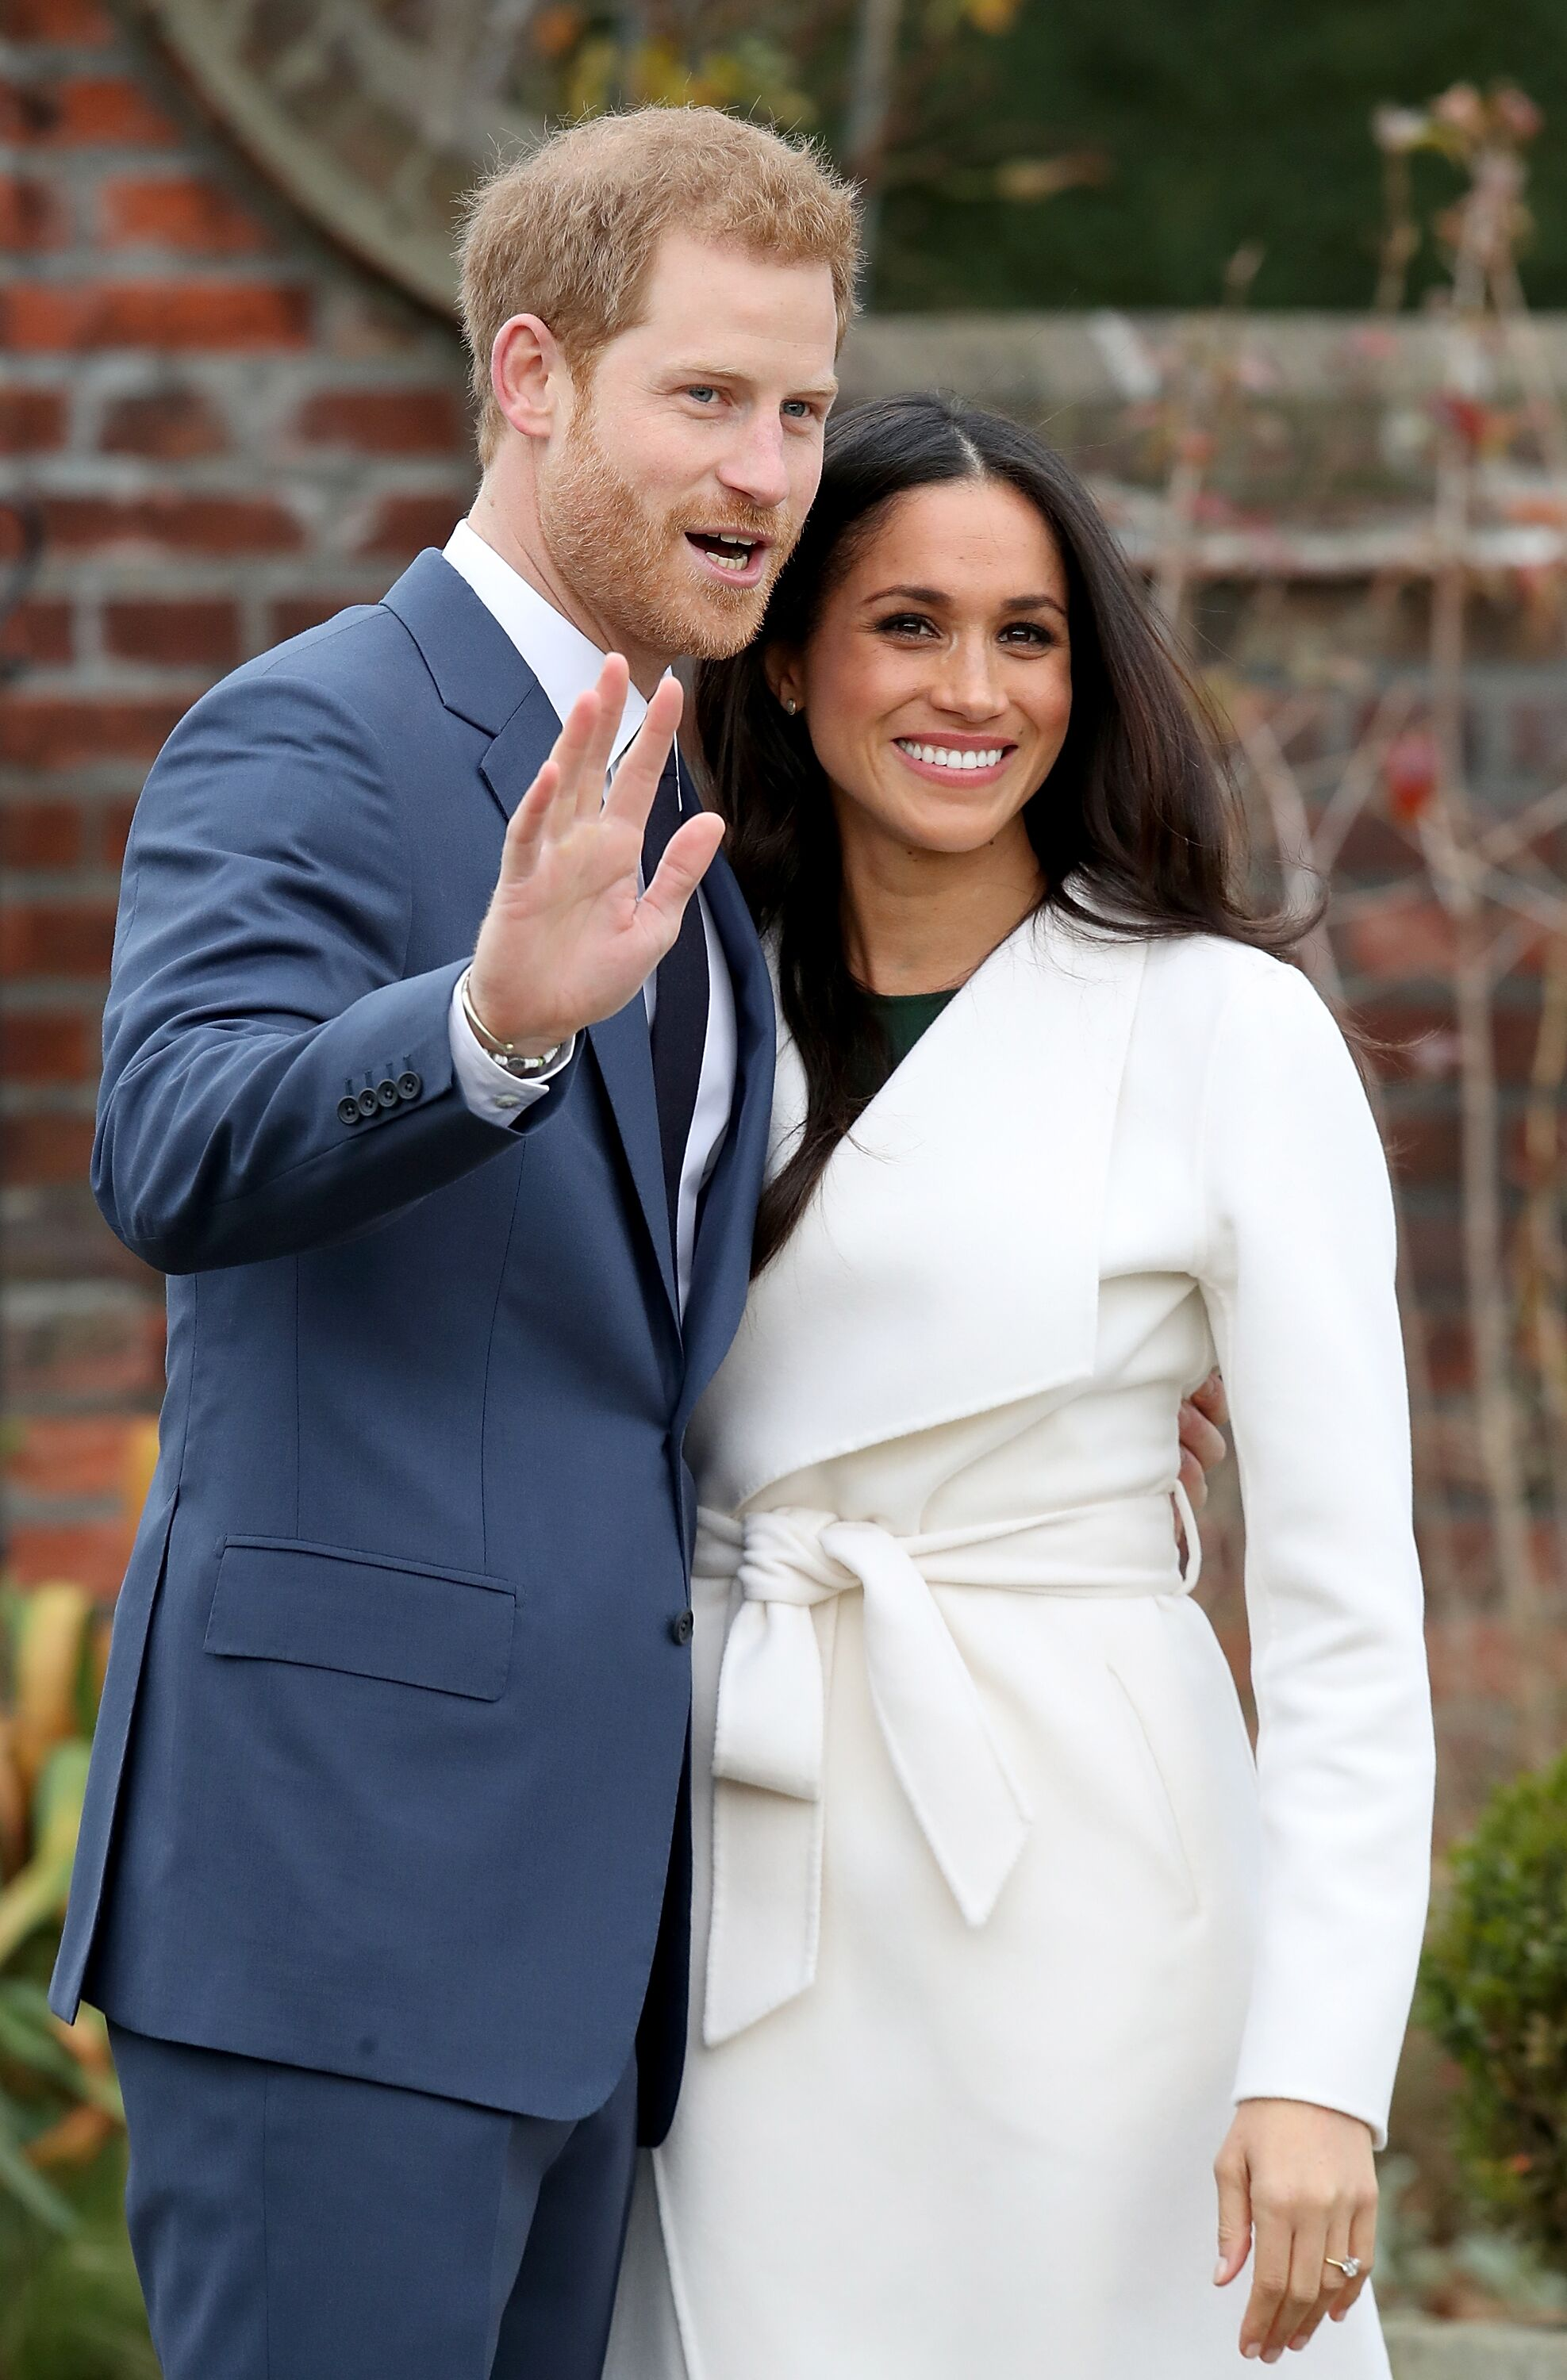 Prince Harry and Meghan Markle during an official photocall to announce their engagement at The Sunken Gardens at Kensington Palace on November 27, 2017 in London, England   Photo: Getty Images